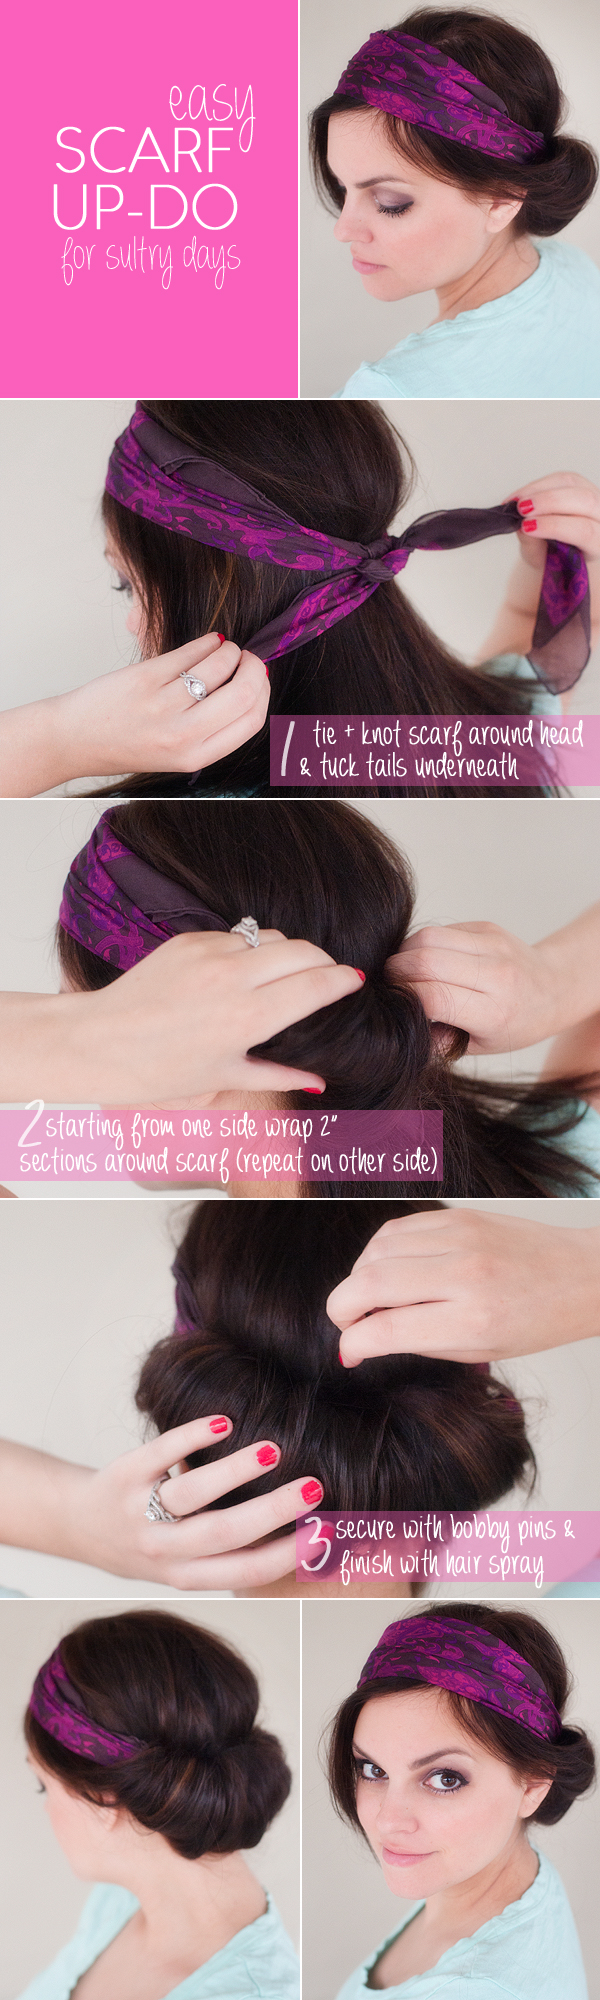 easy_scarf_updo_1